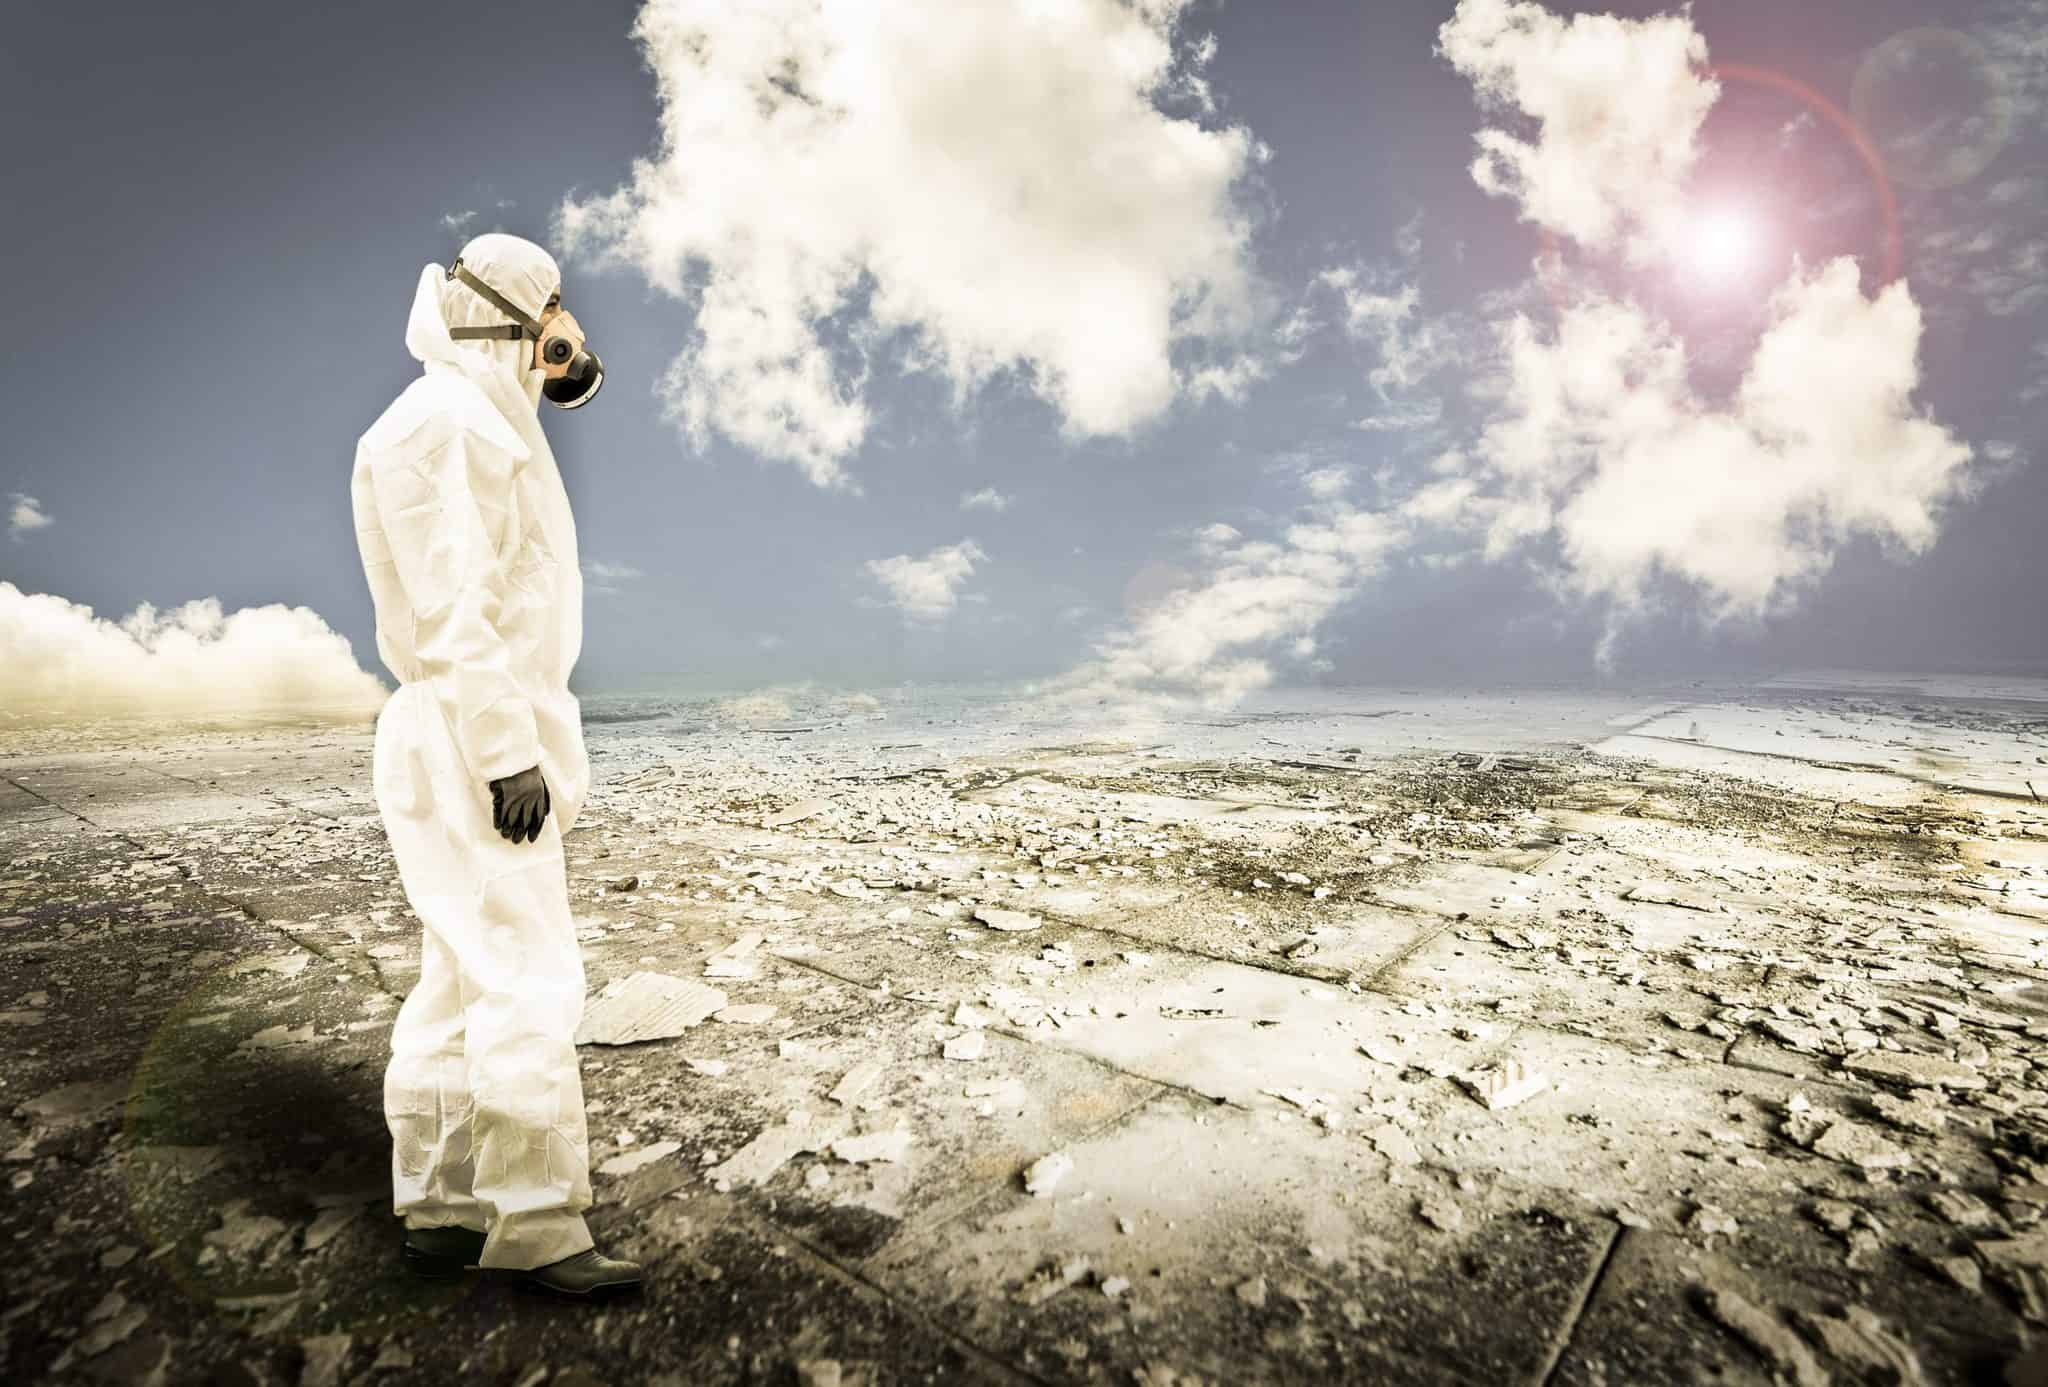 person in protective gear looking over a desolate area